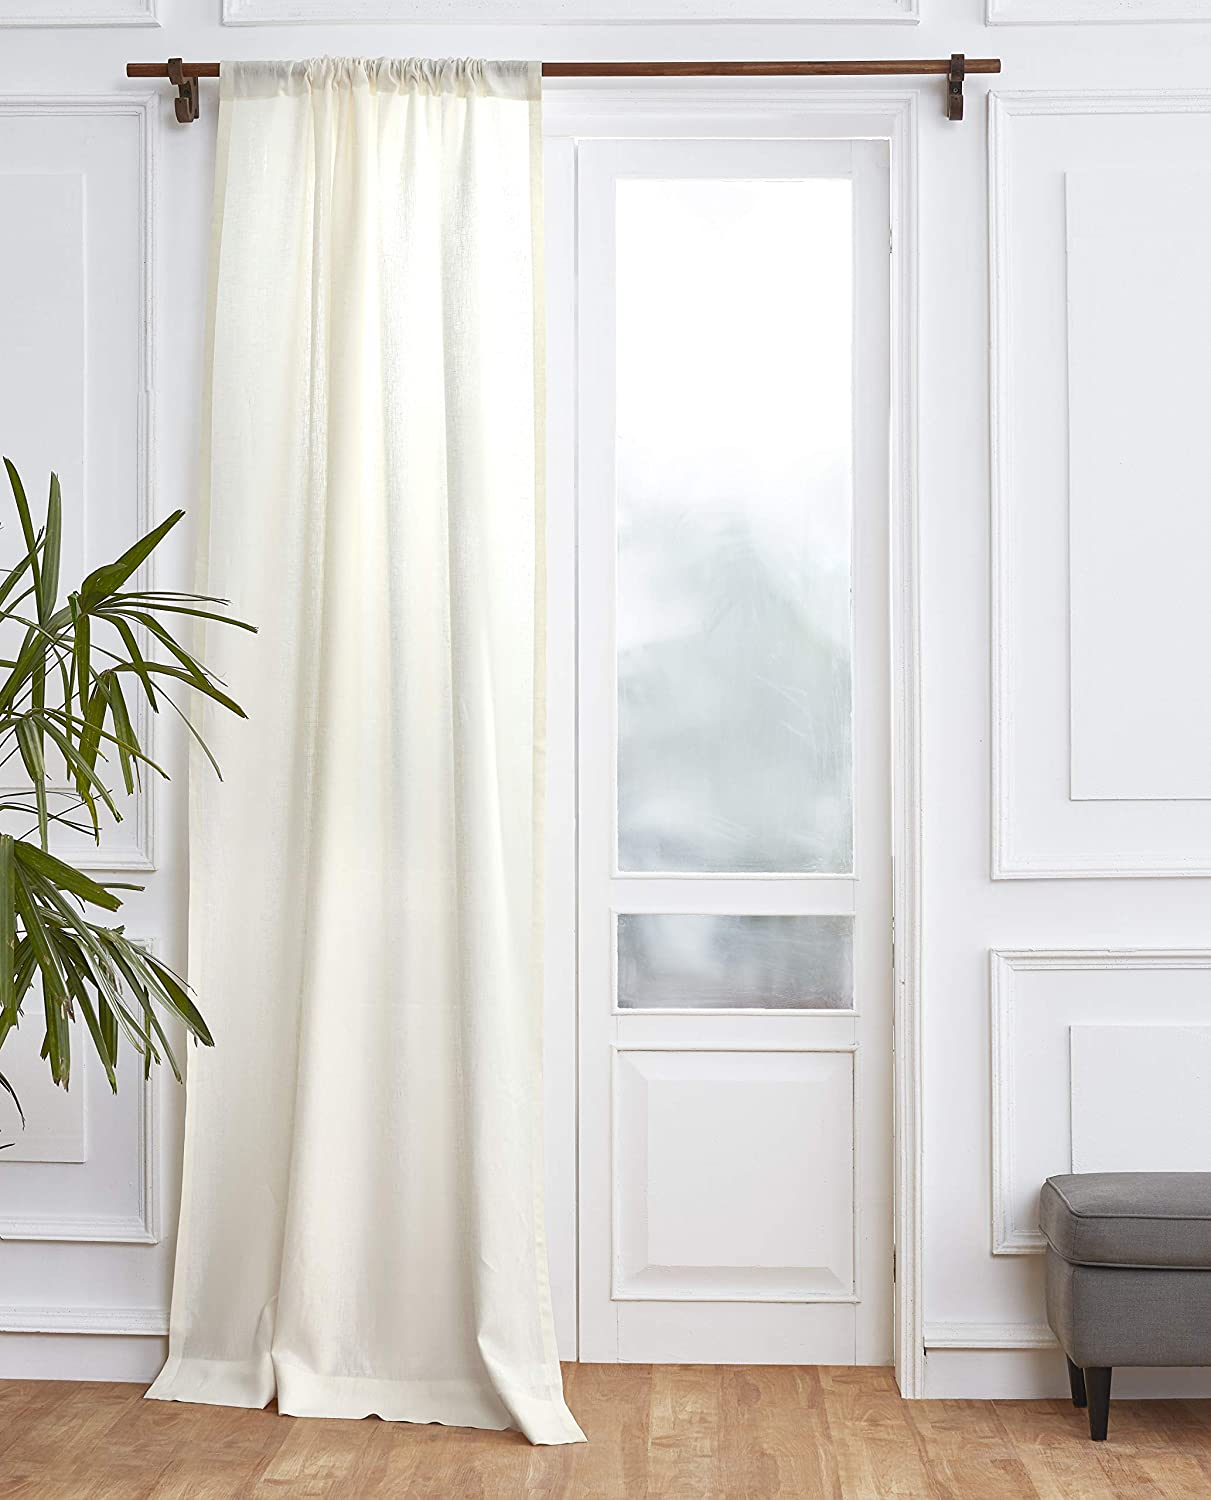 Solino Home 100% Pure Linen Curtain – 52 x 96 Inch Ivory Lightweight Rod Pocket Window Panel – Handcrafted from European Flax